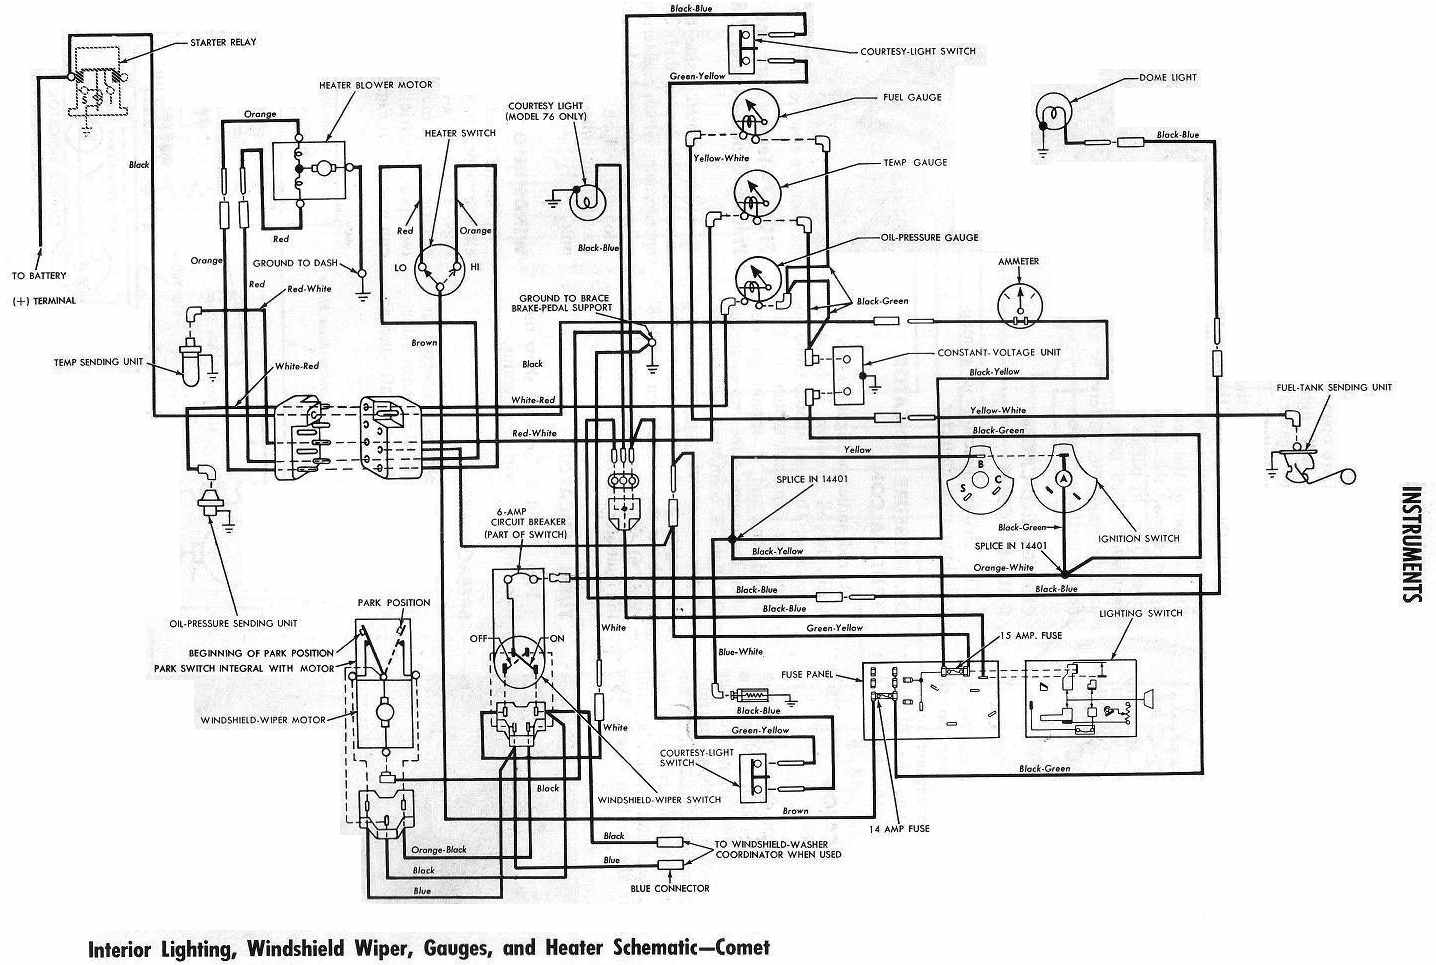 1973 Chevrolet Nova Wiring Diagram Further 1966 Nova Wiring Diagram